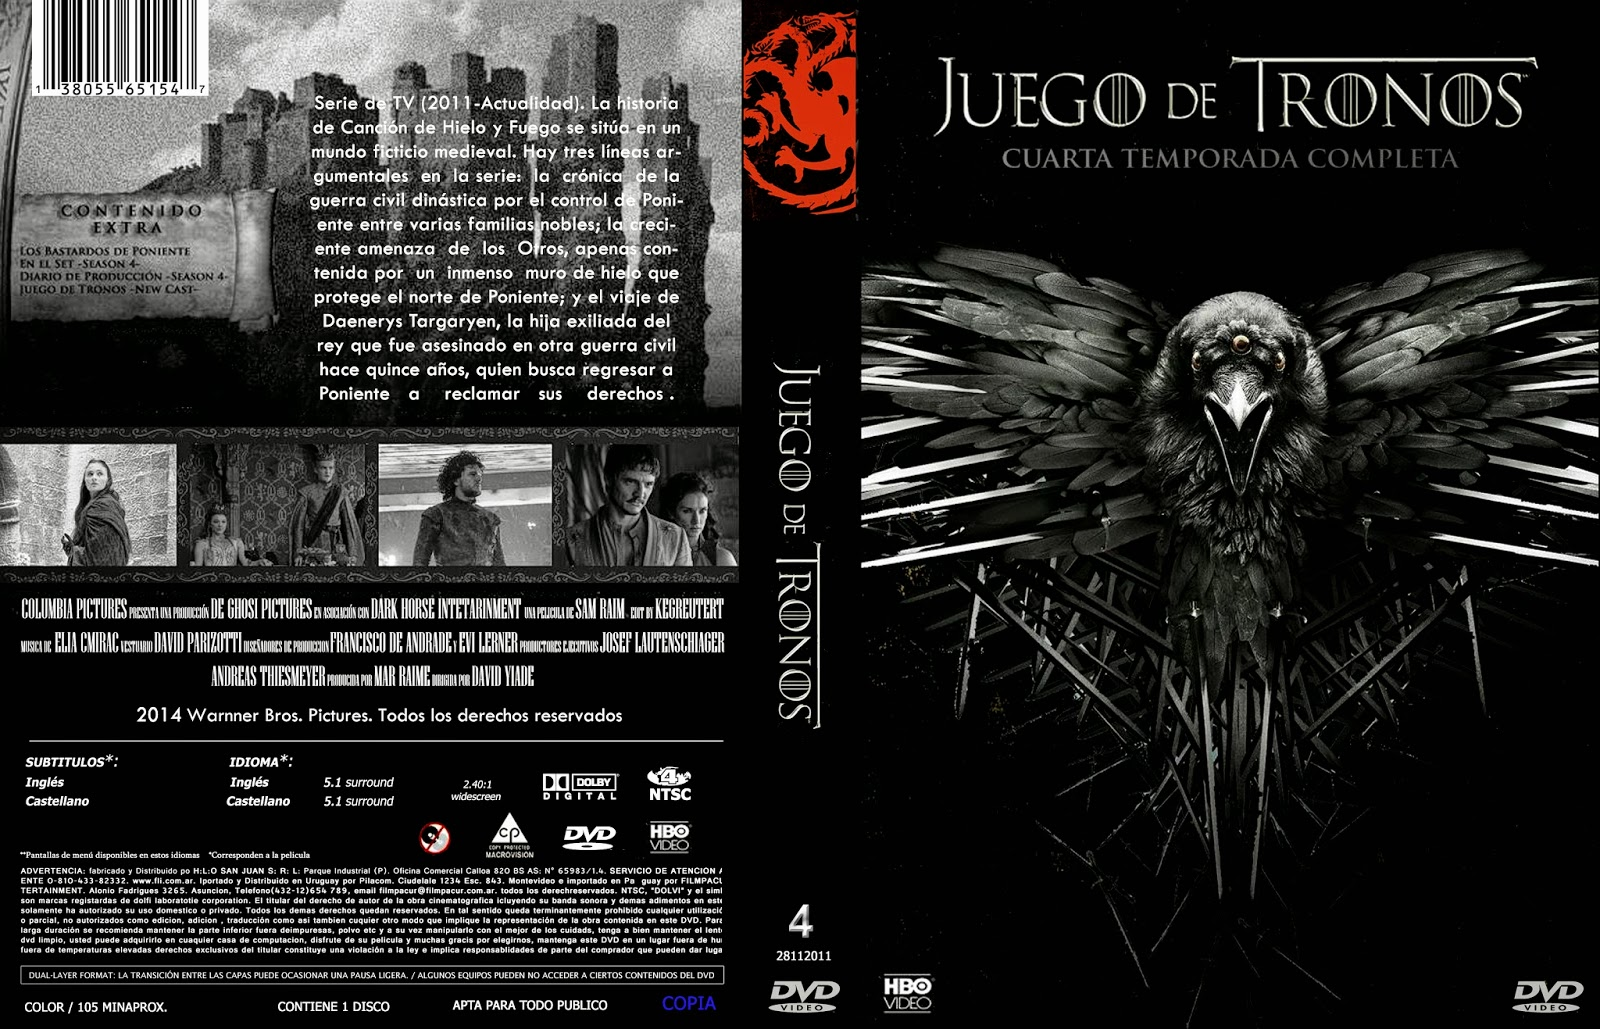 COVERCARATULAS DE DVD - CD COVERCREATORS: JUEGO DE TRONOS \